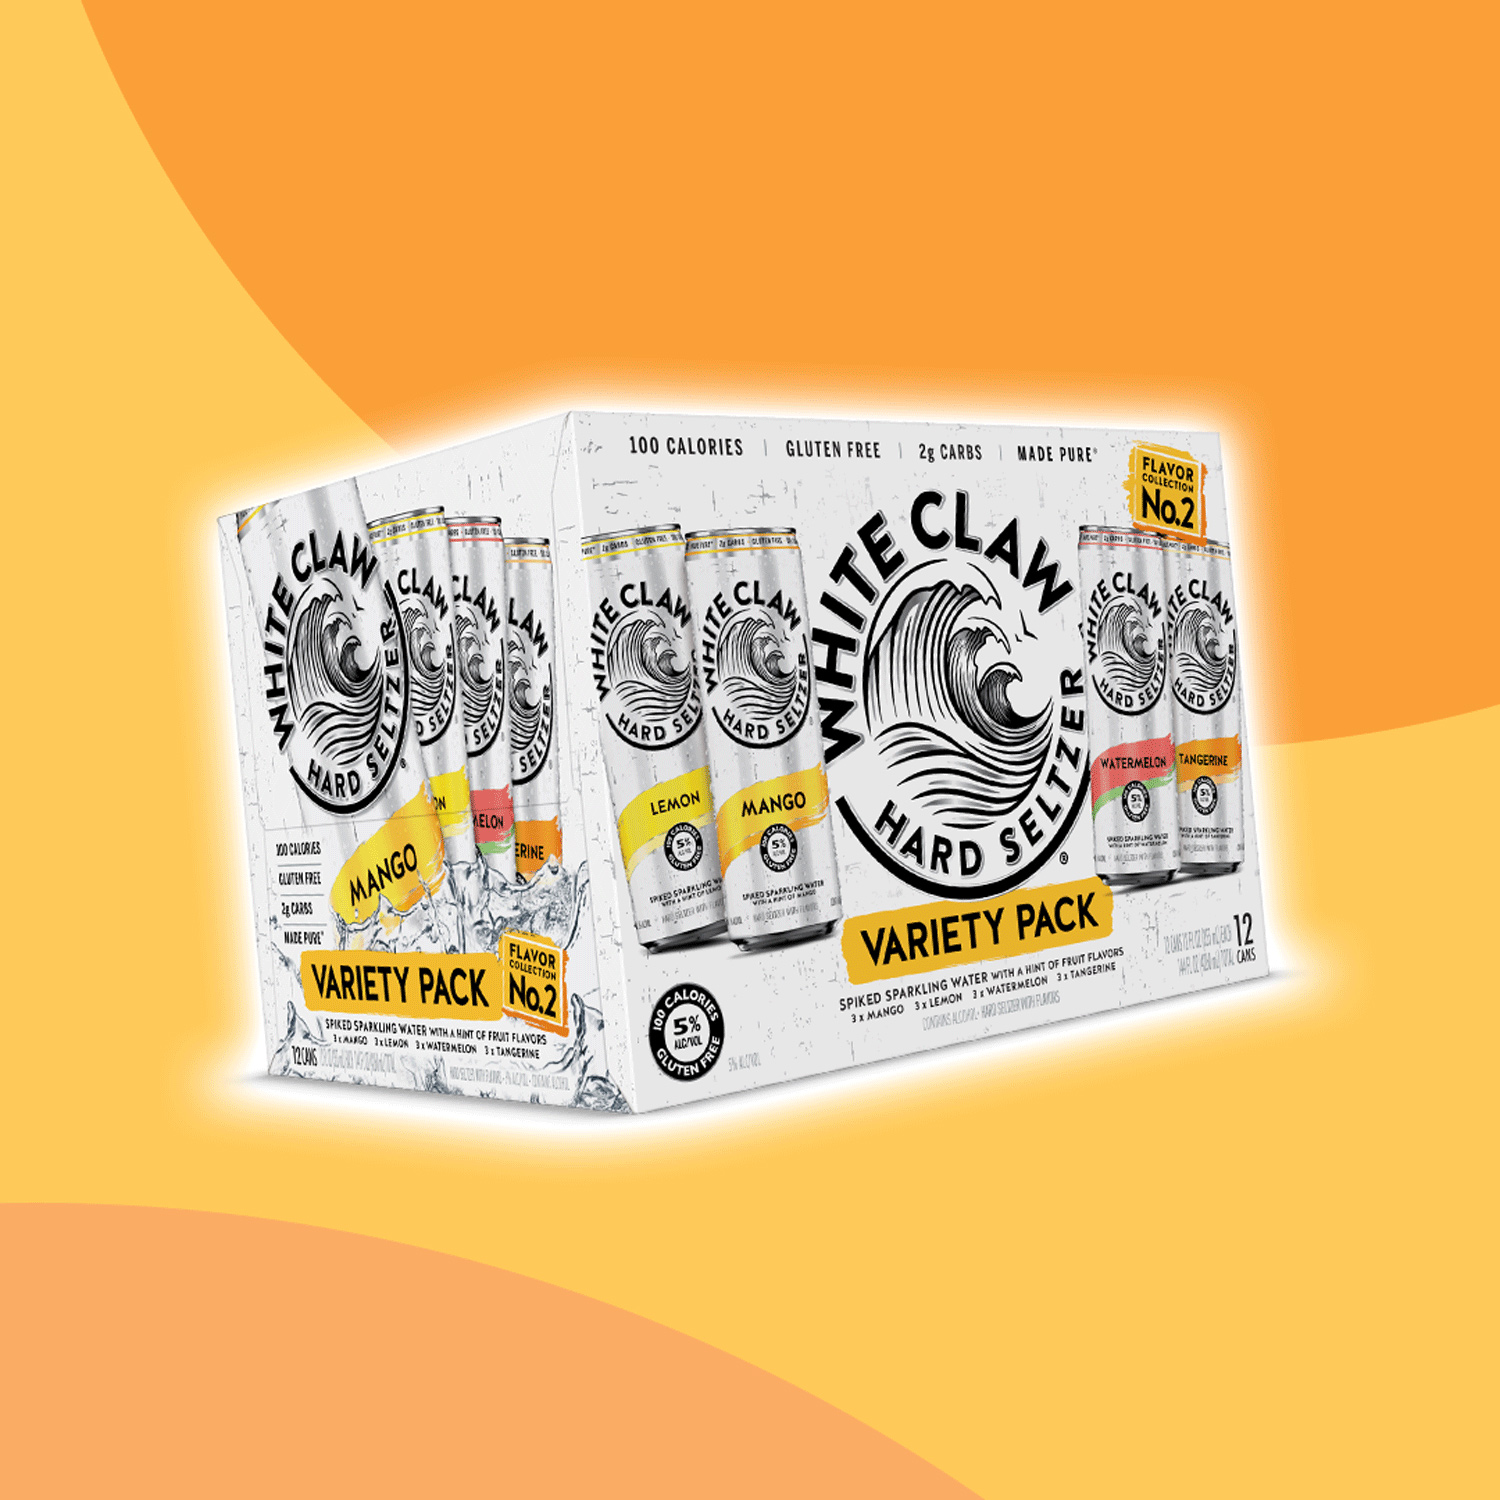 Case of White Claw